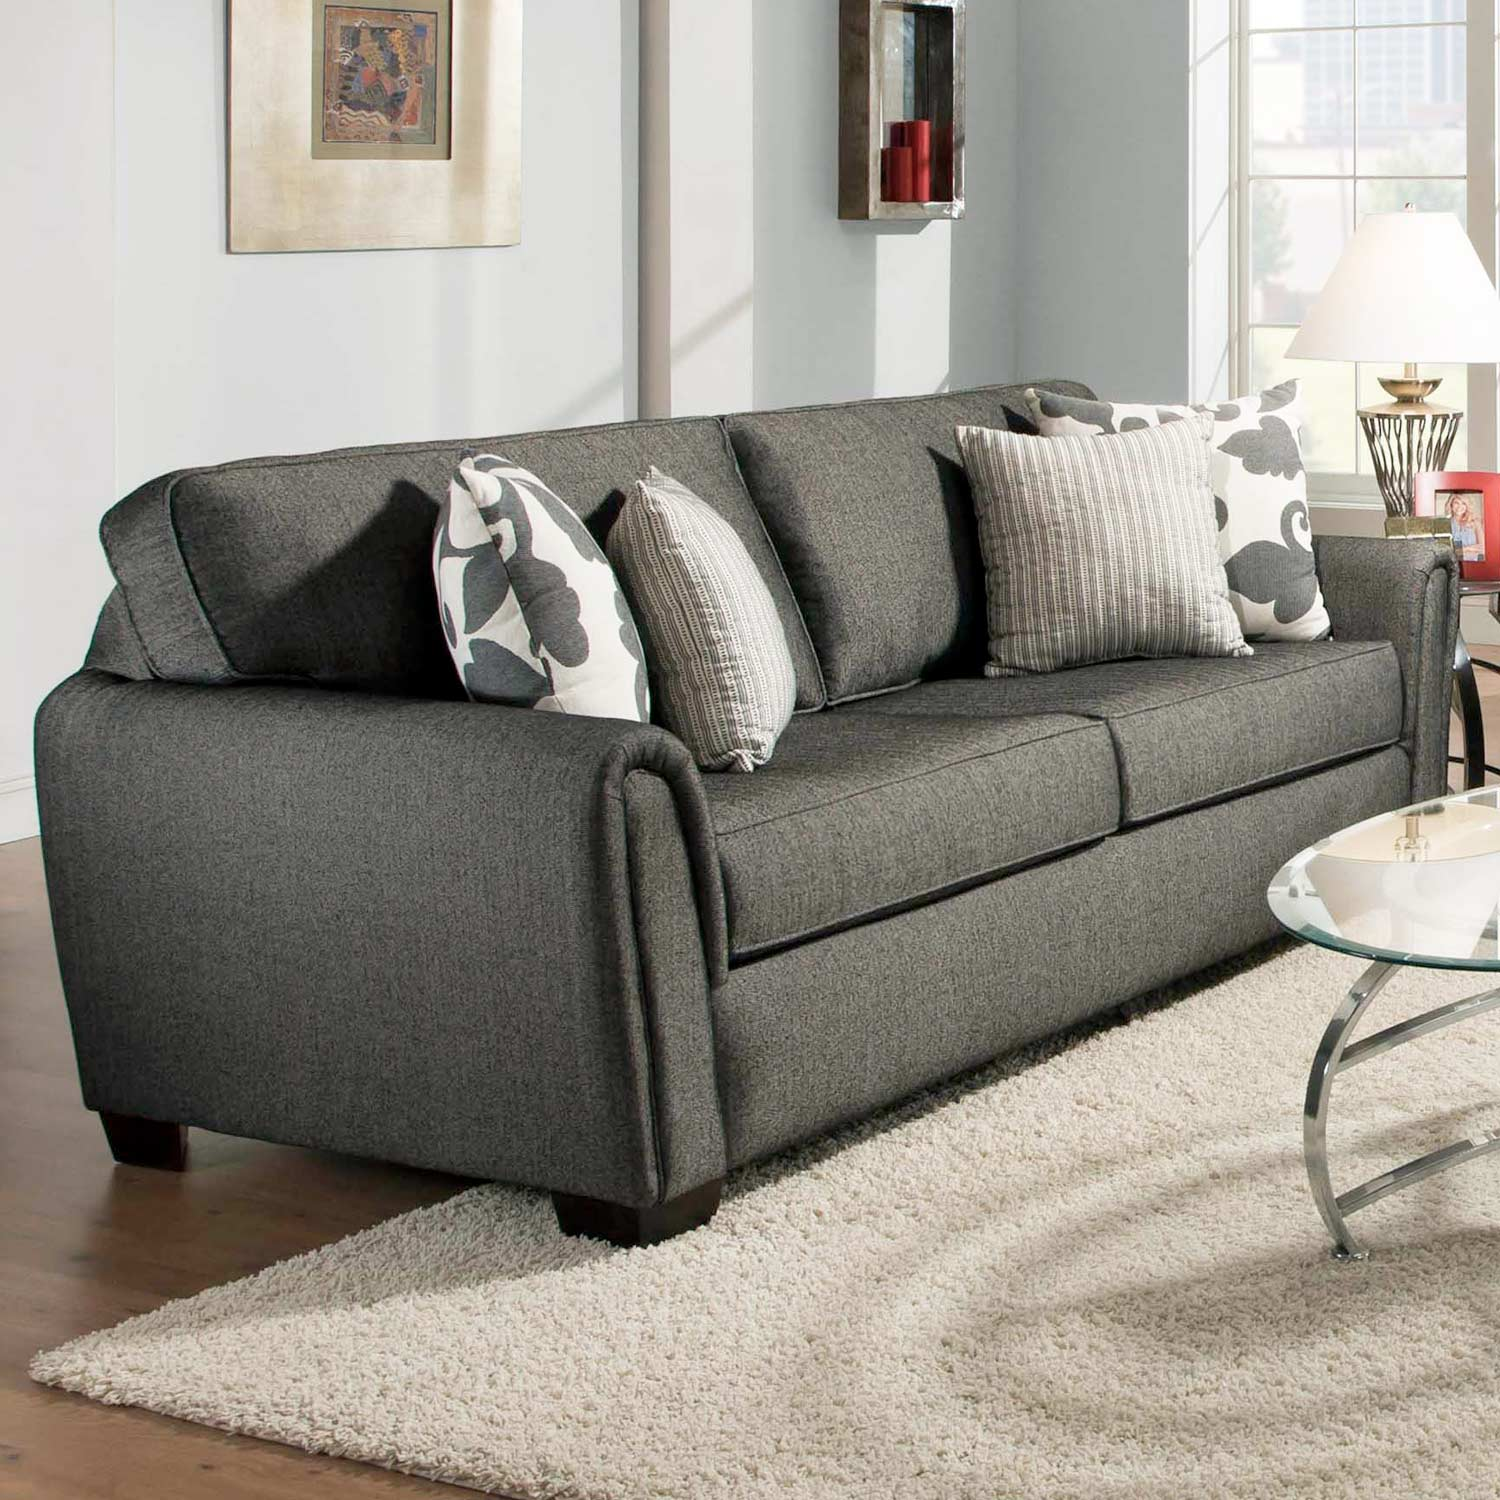 Veronica Modern Sofa - Block Feet, Talbot Onyx Fabric - CHF-527303